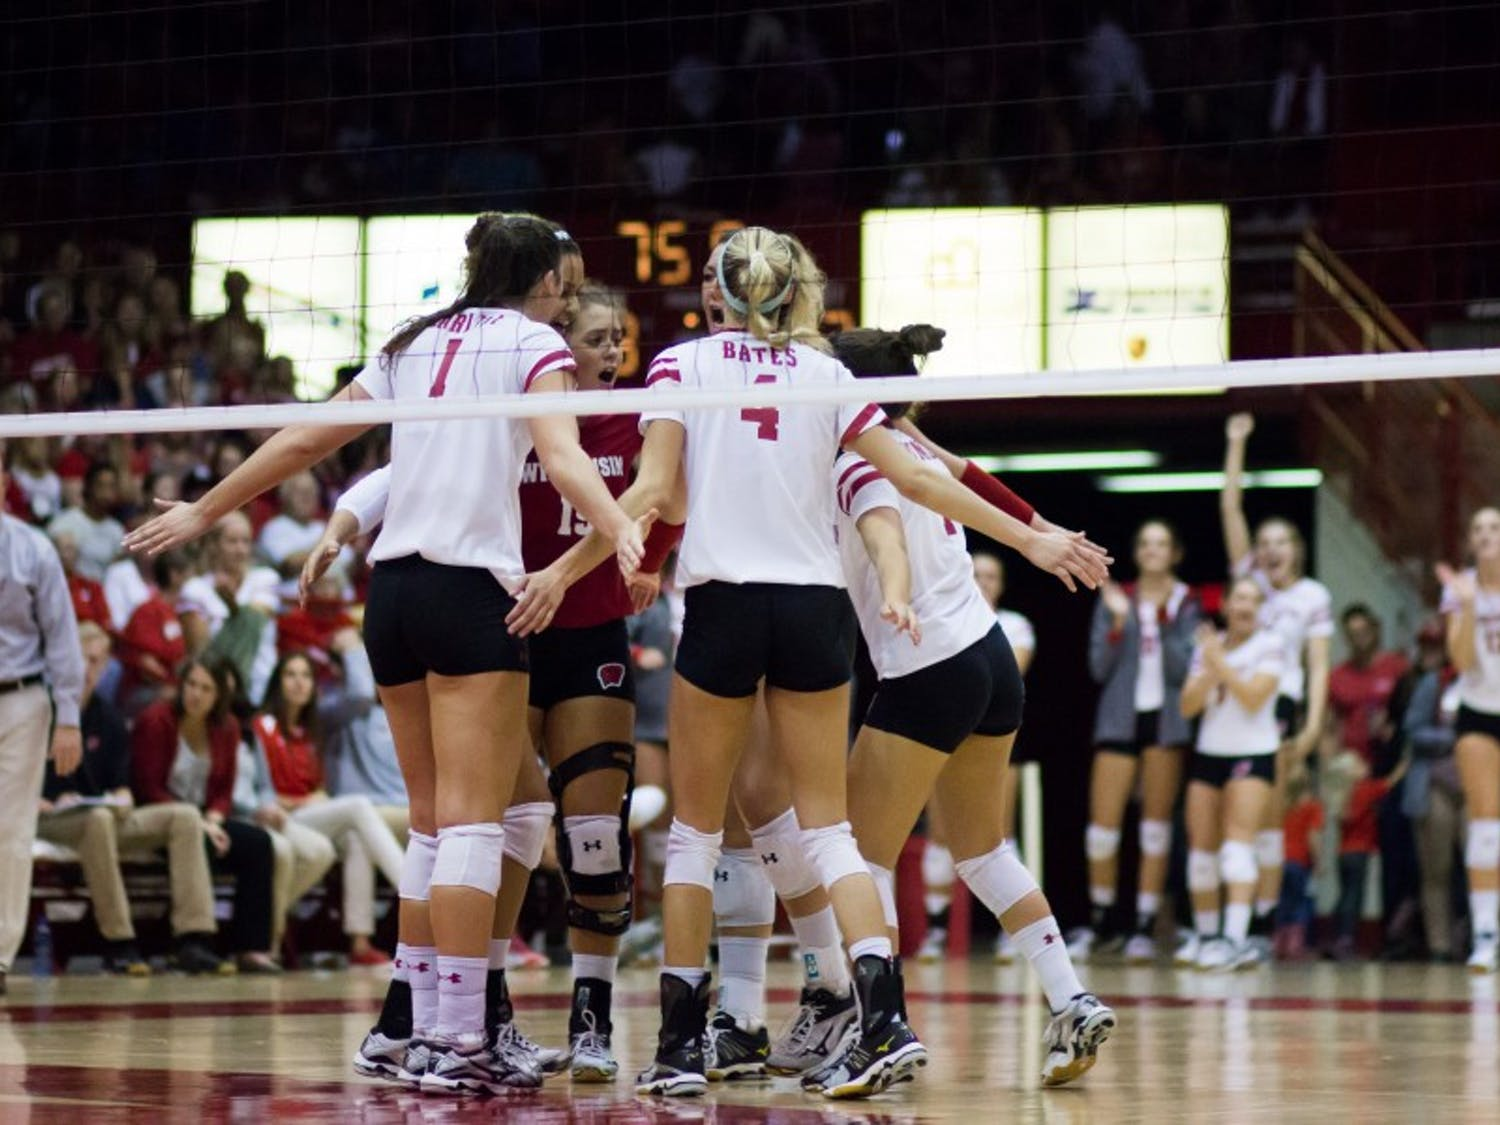 The Badgers remained perfect in the Big Ten after a comeback victory over No. 14 Purdue and a sweep of Indiana.